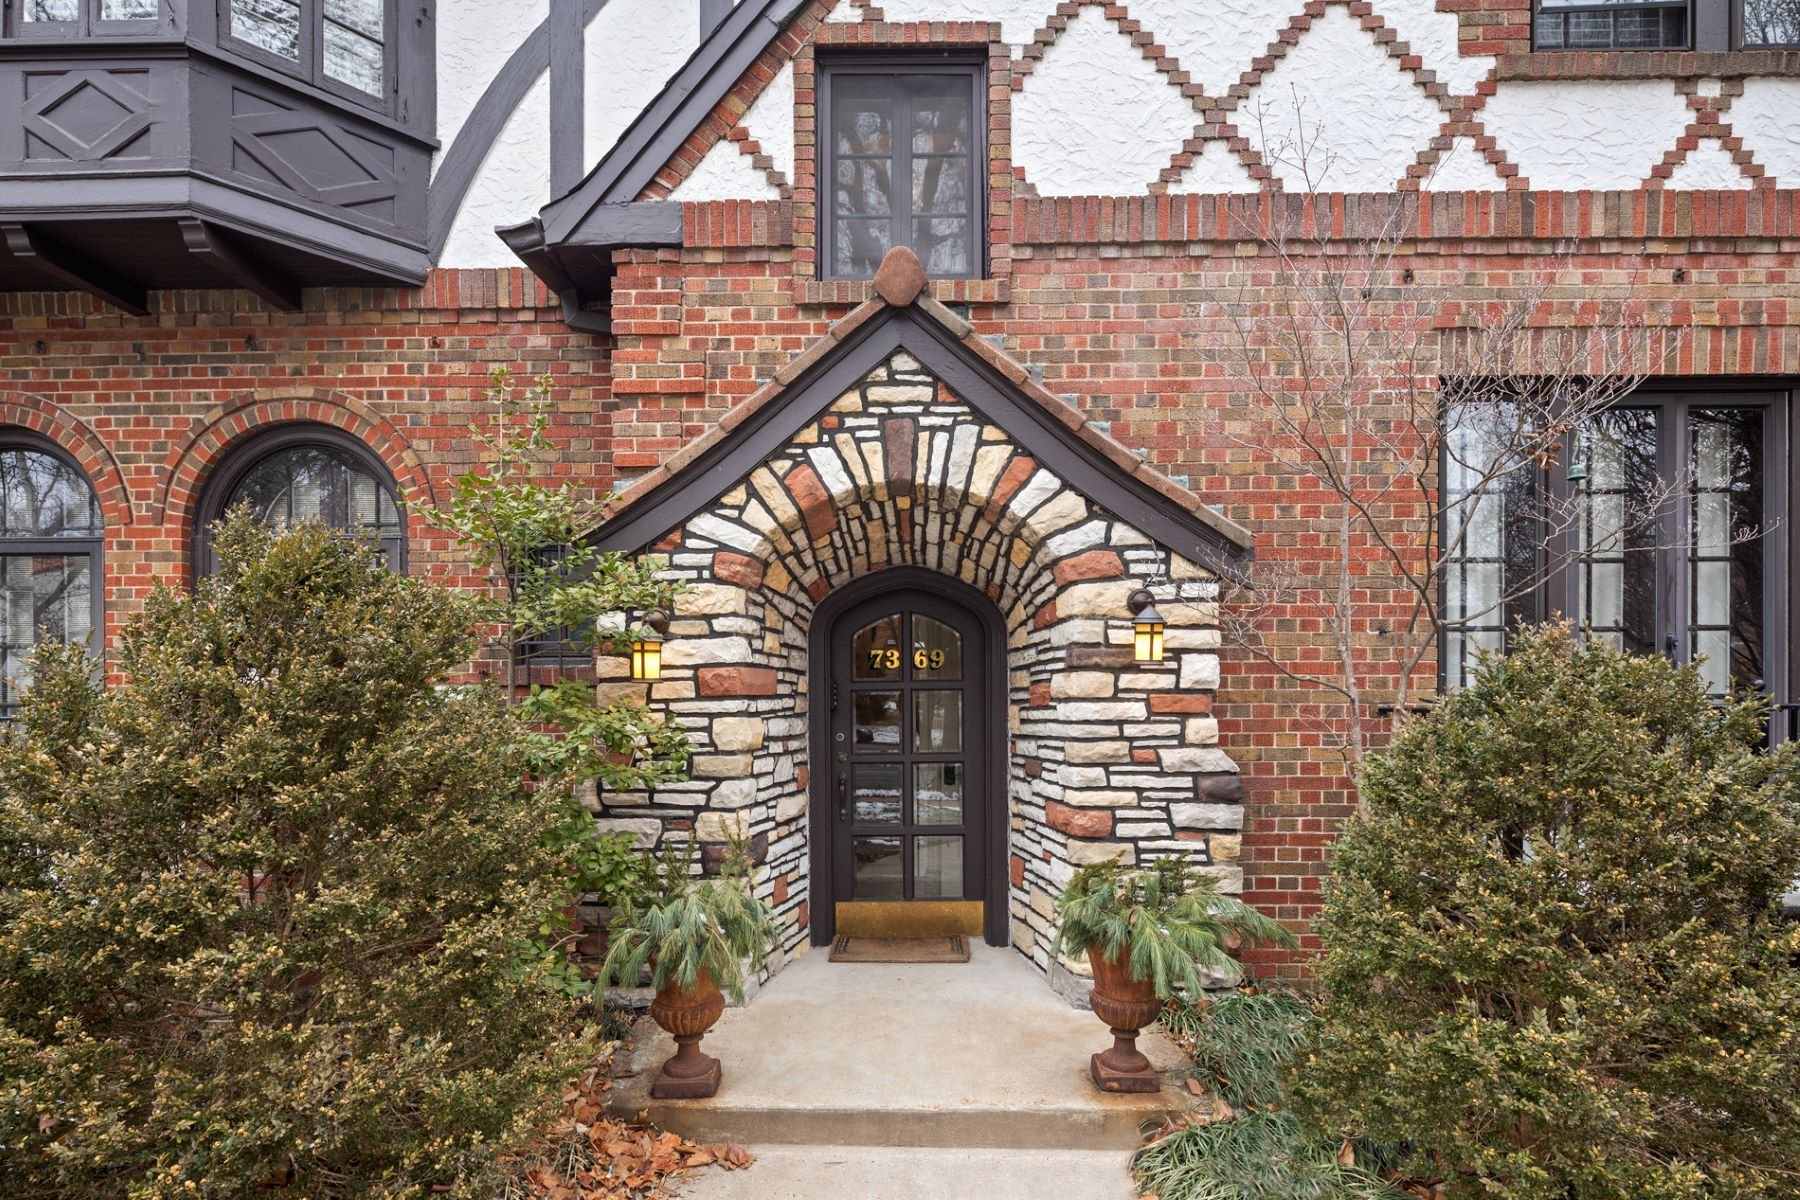 Condominium for Sale at Pershing Ave 7369 Pershing Ave # 2W St. Louis, Missouri 63130 United States